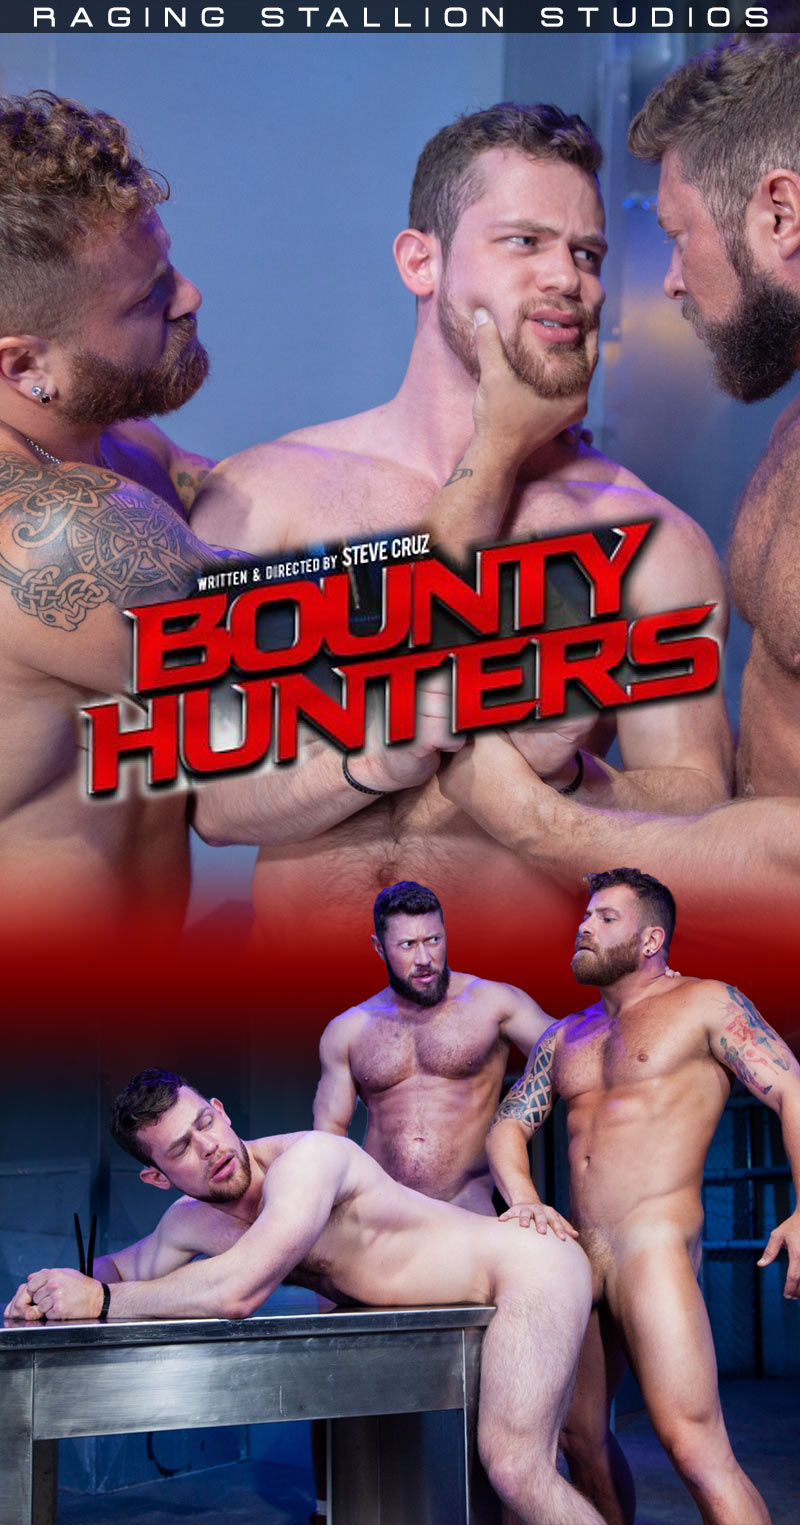 Bounty Hunters, Scene Four (Johnny Ryder, Kurtis Wolfe and Riley Mitchell) at Raging Stallion